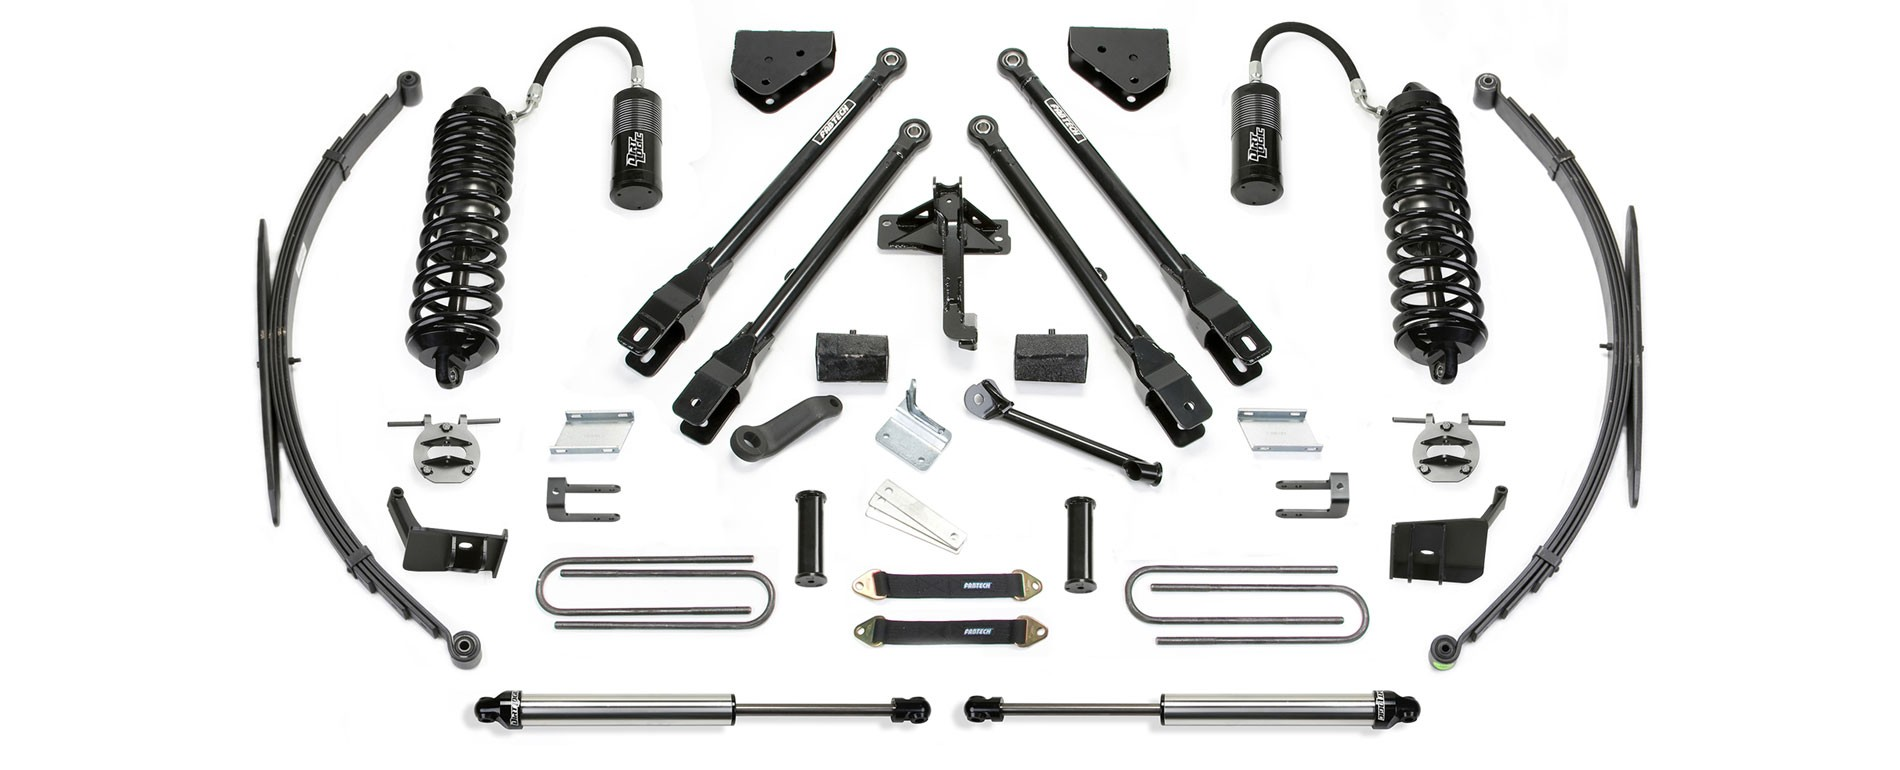 "FABTECH  2011-16   8"" 4 Link System w/ Front Dirt Logic 4.0 Resi Coilovers & Rear Dirt Logic Shocks -Ford F250/F350 4WD"